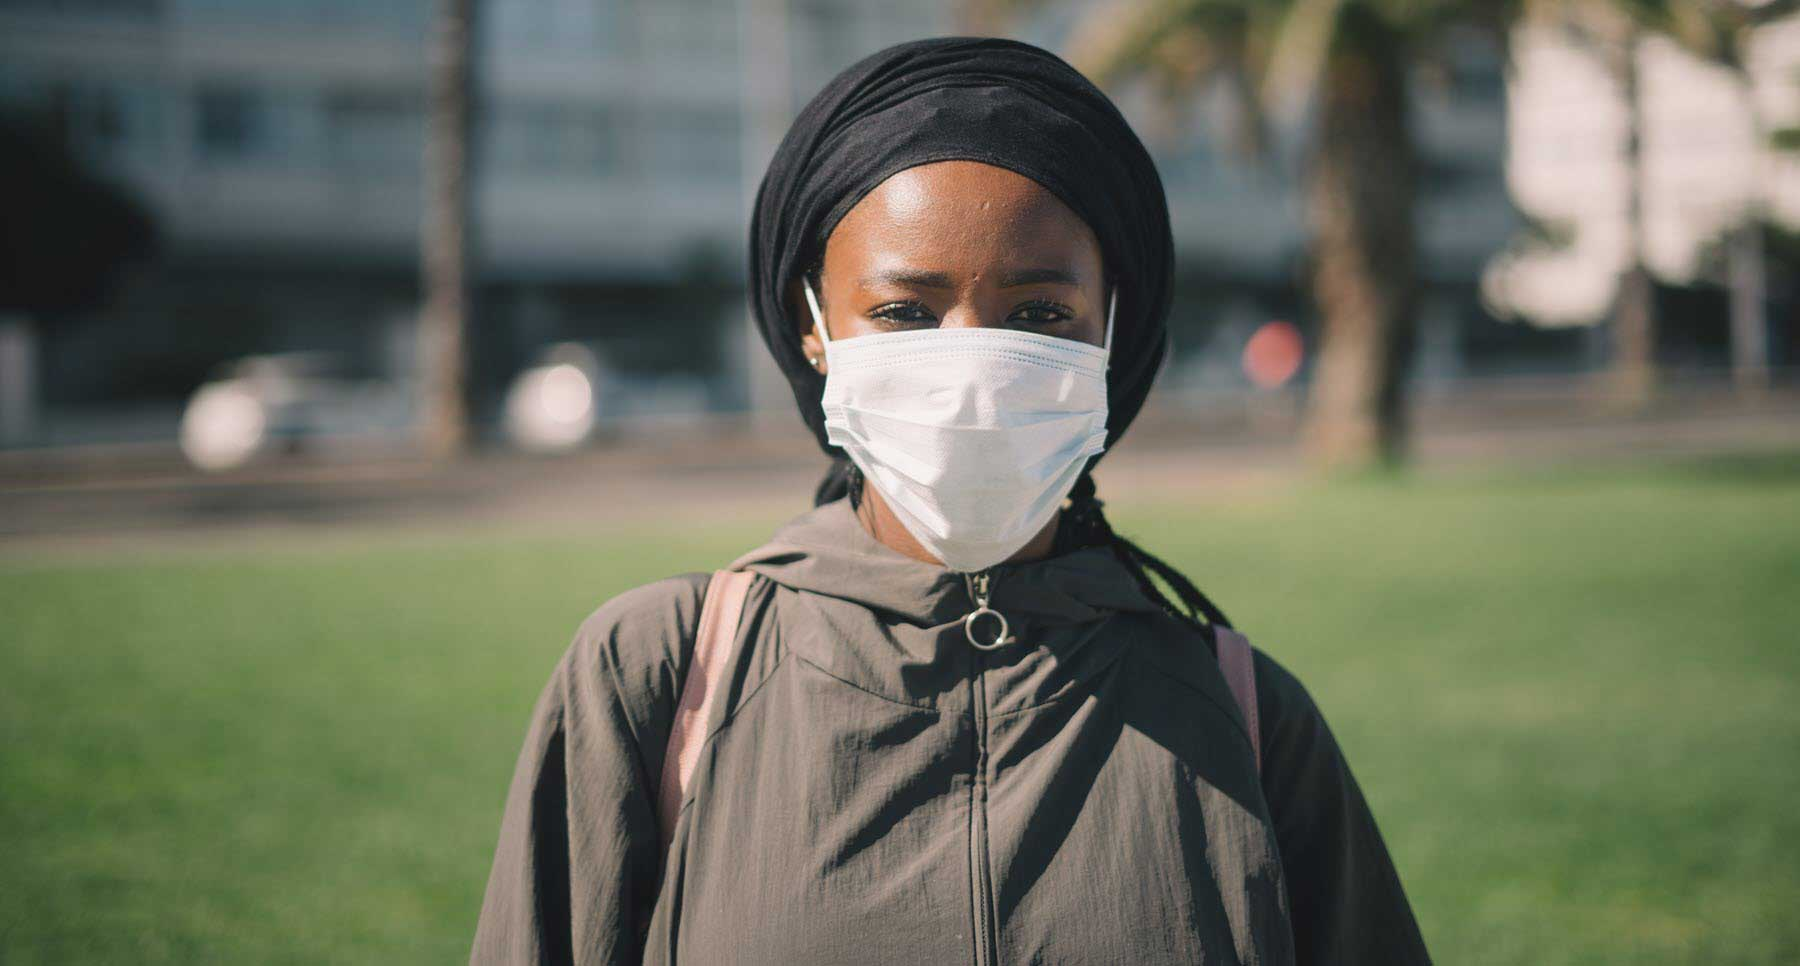 Black-teen-female-wearing-a-mask-Are-More-People-Depressed-During-the-COVID-19-Pandemic-TheHopeLine